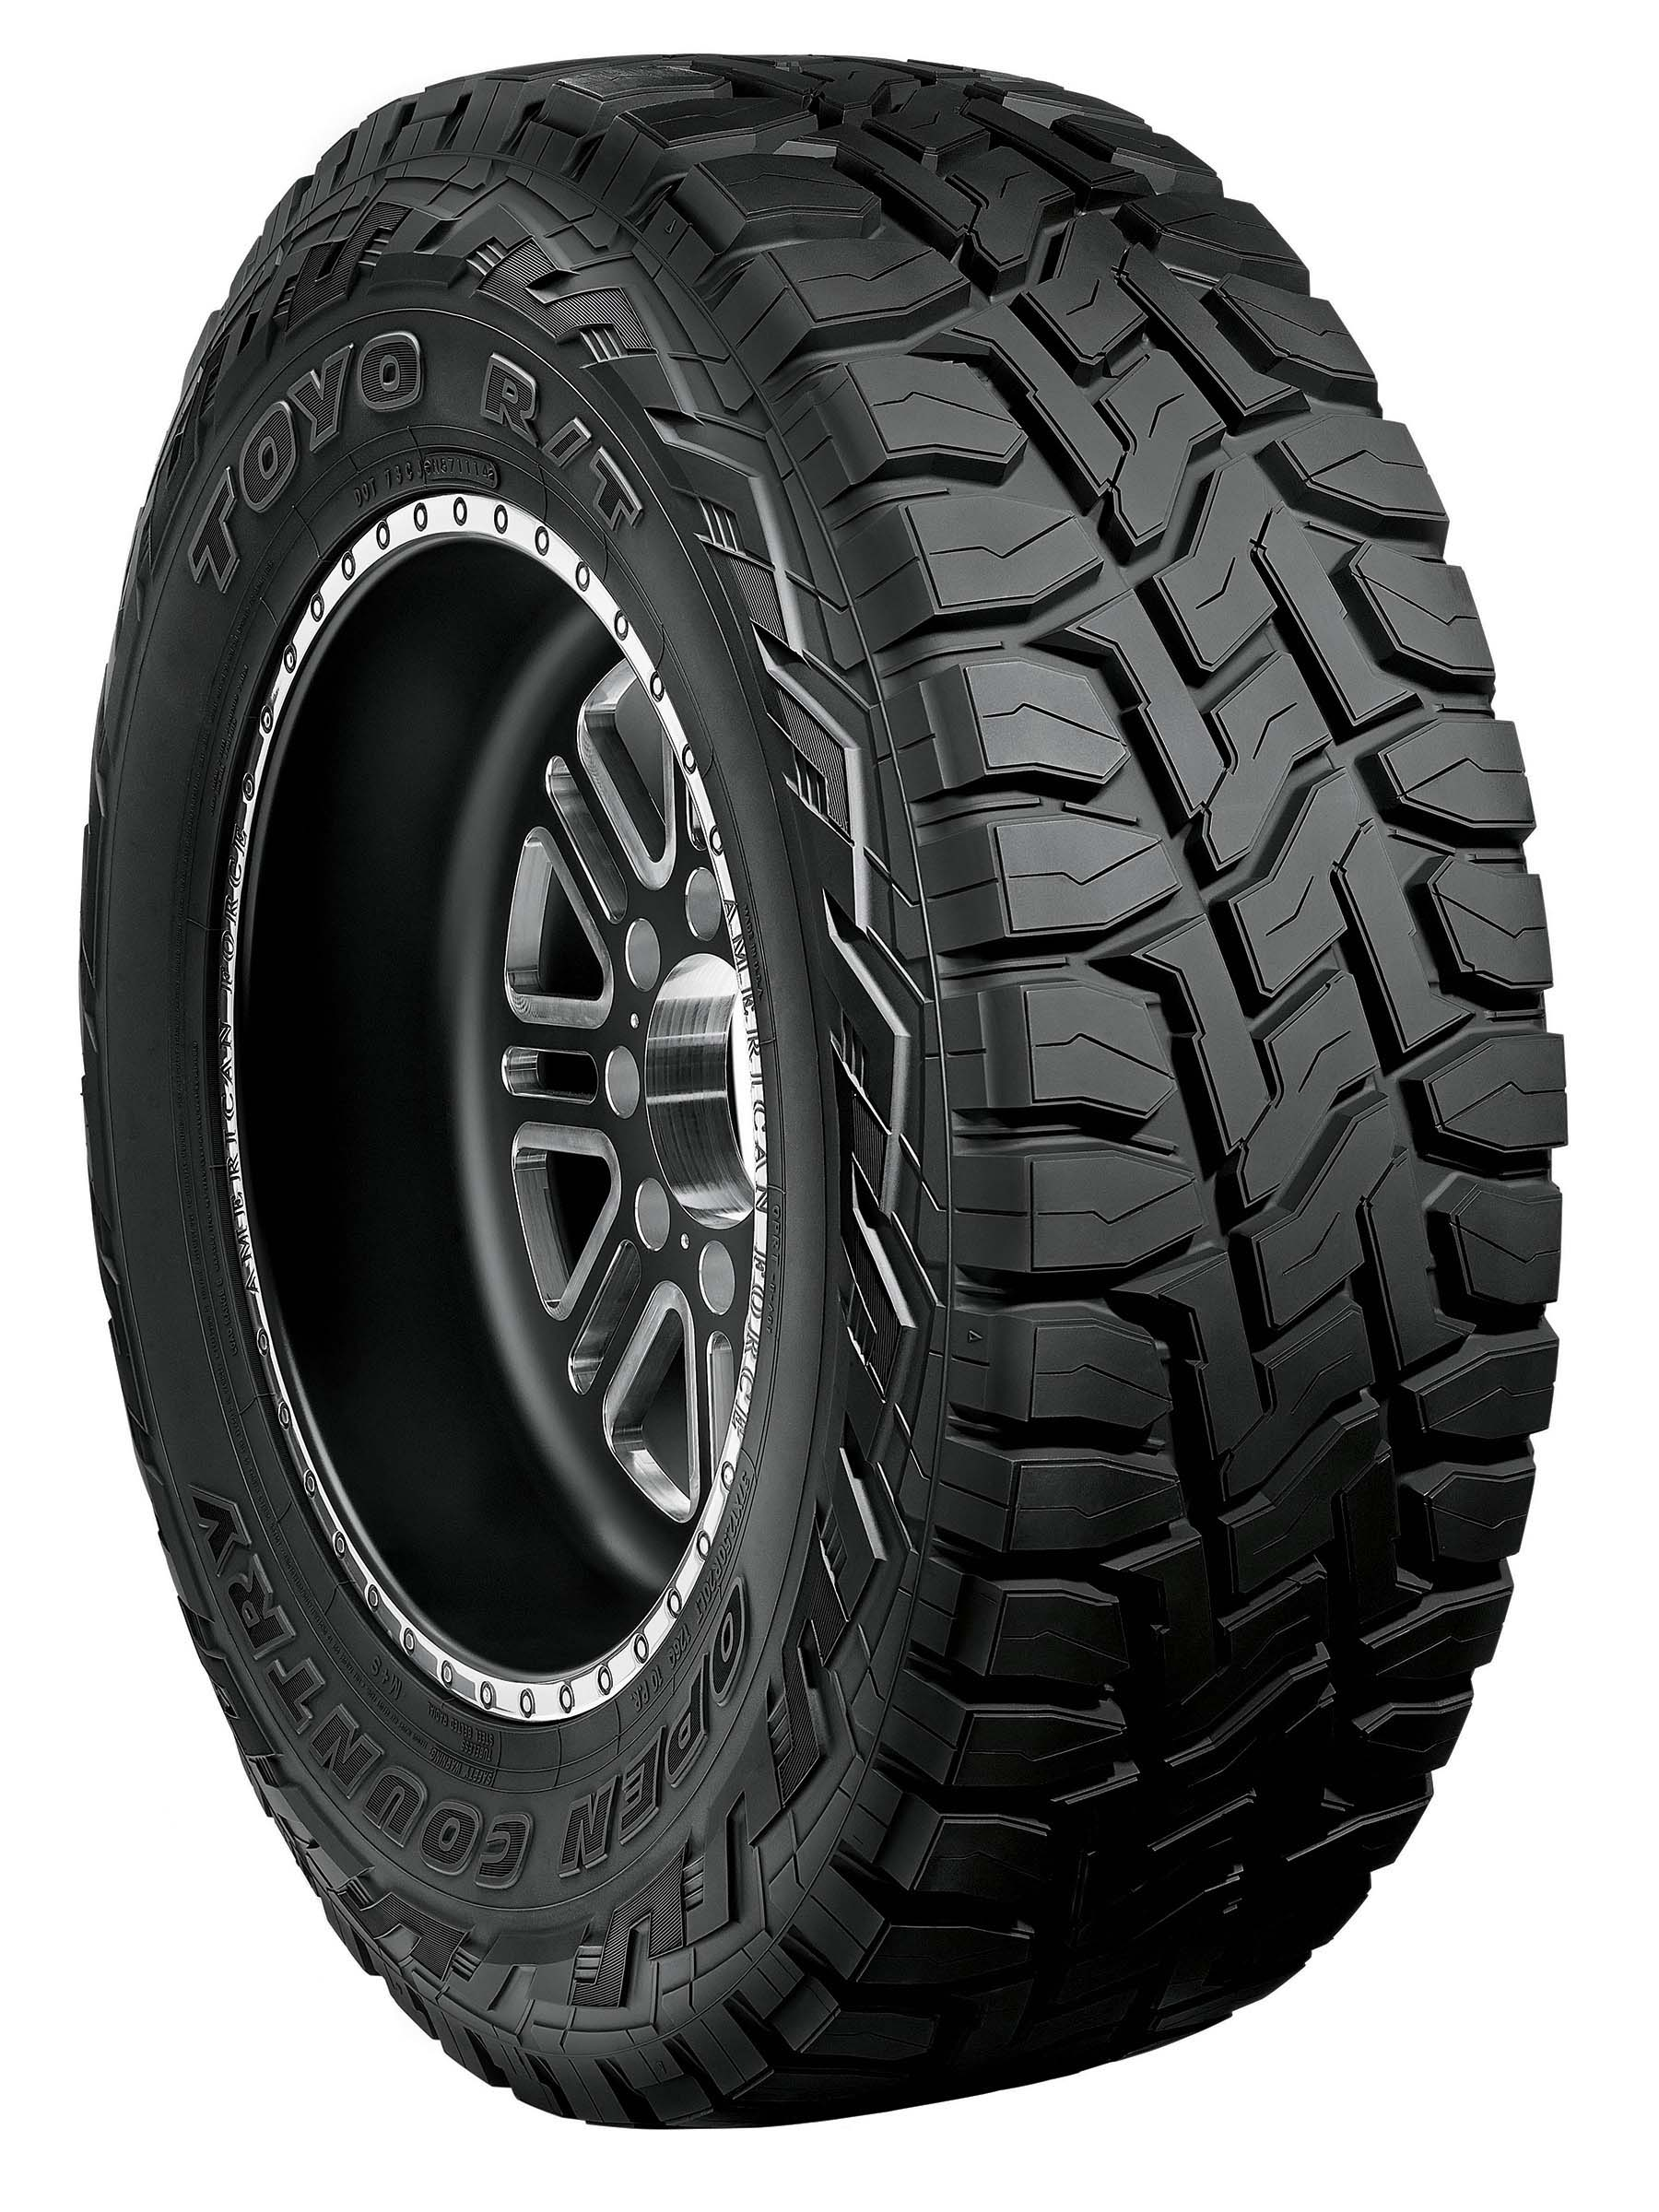 The new Toyo® Open Country® R/T by Toyo Tires® is built rugged for any terrain.